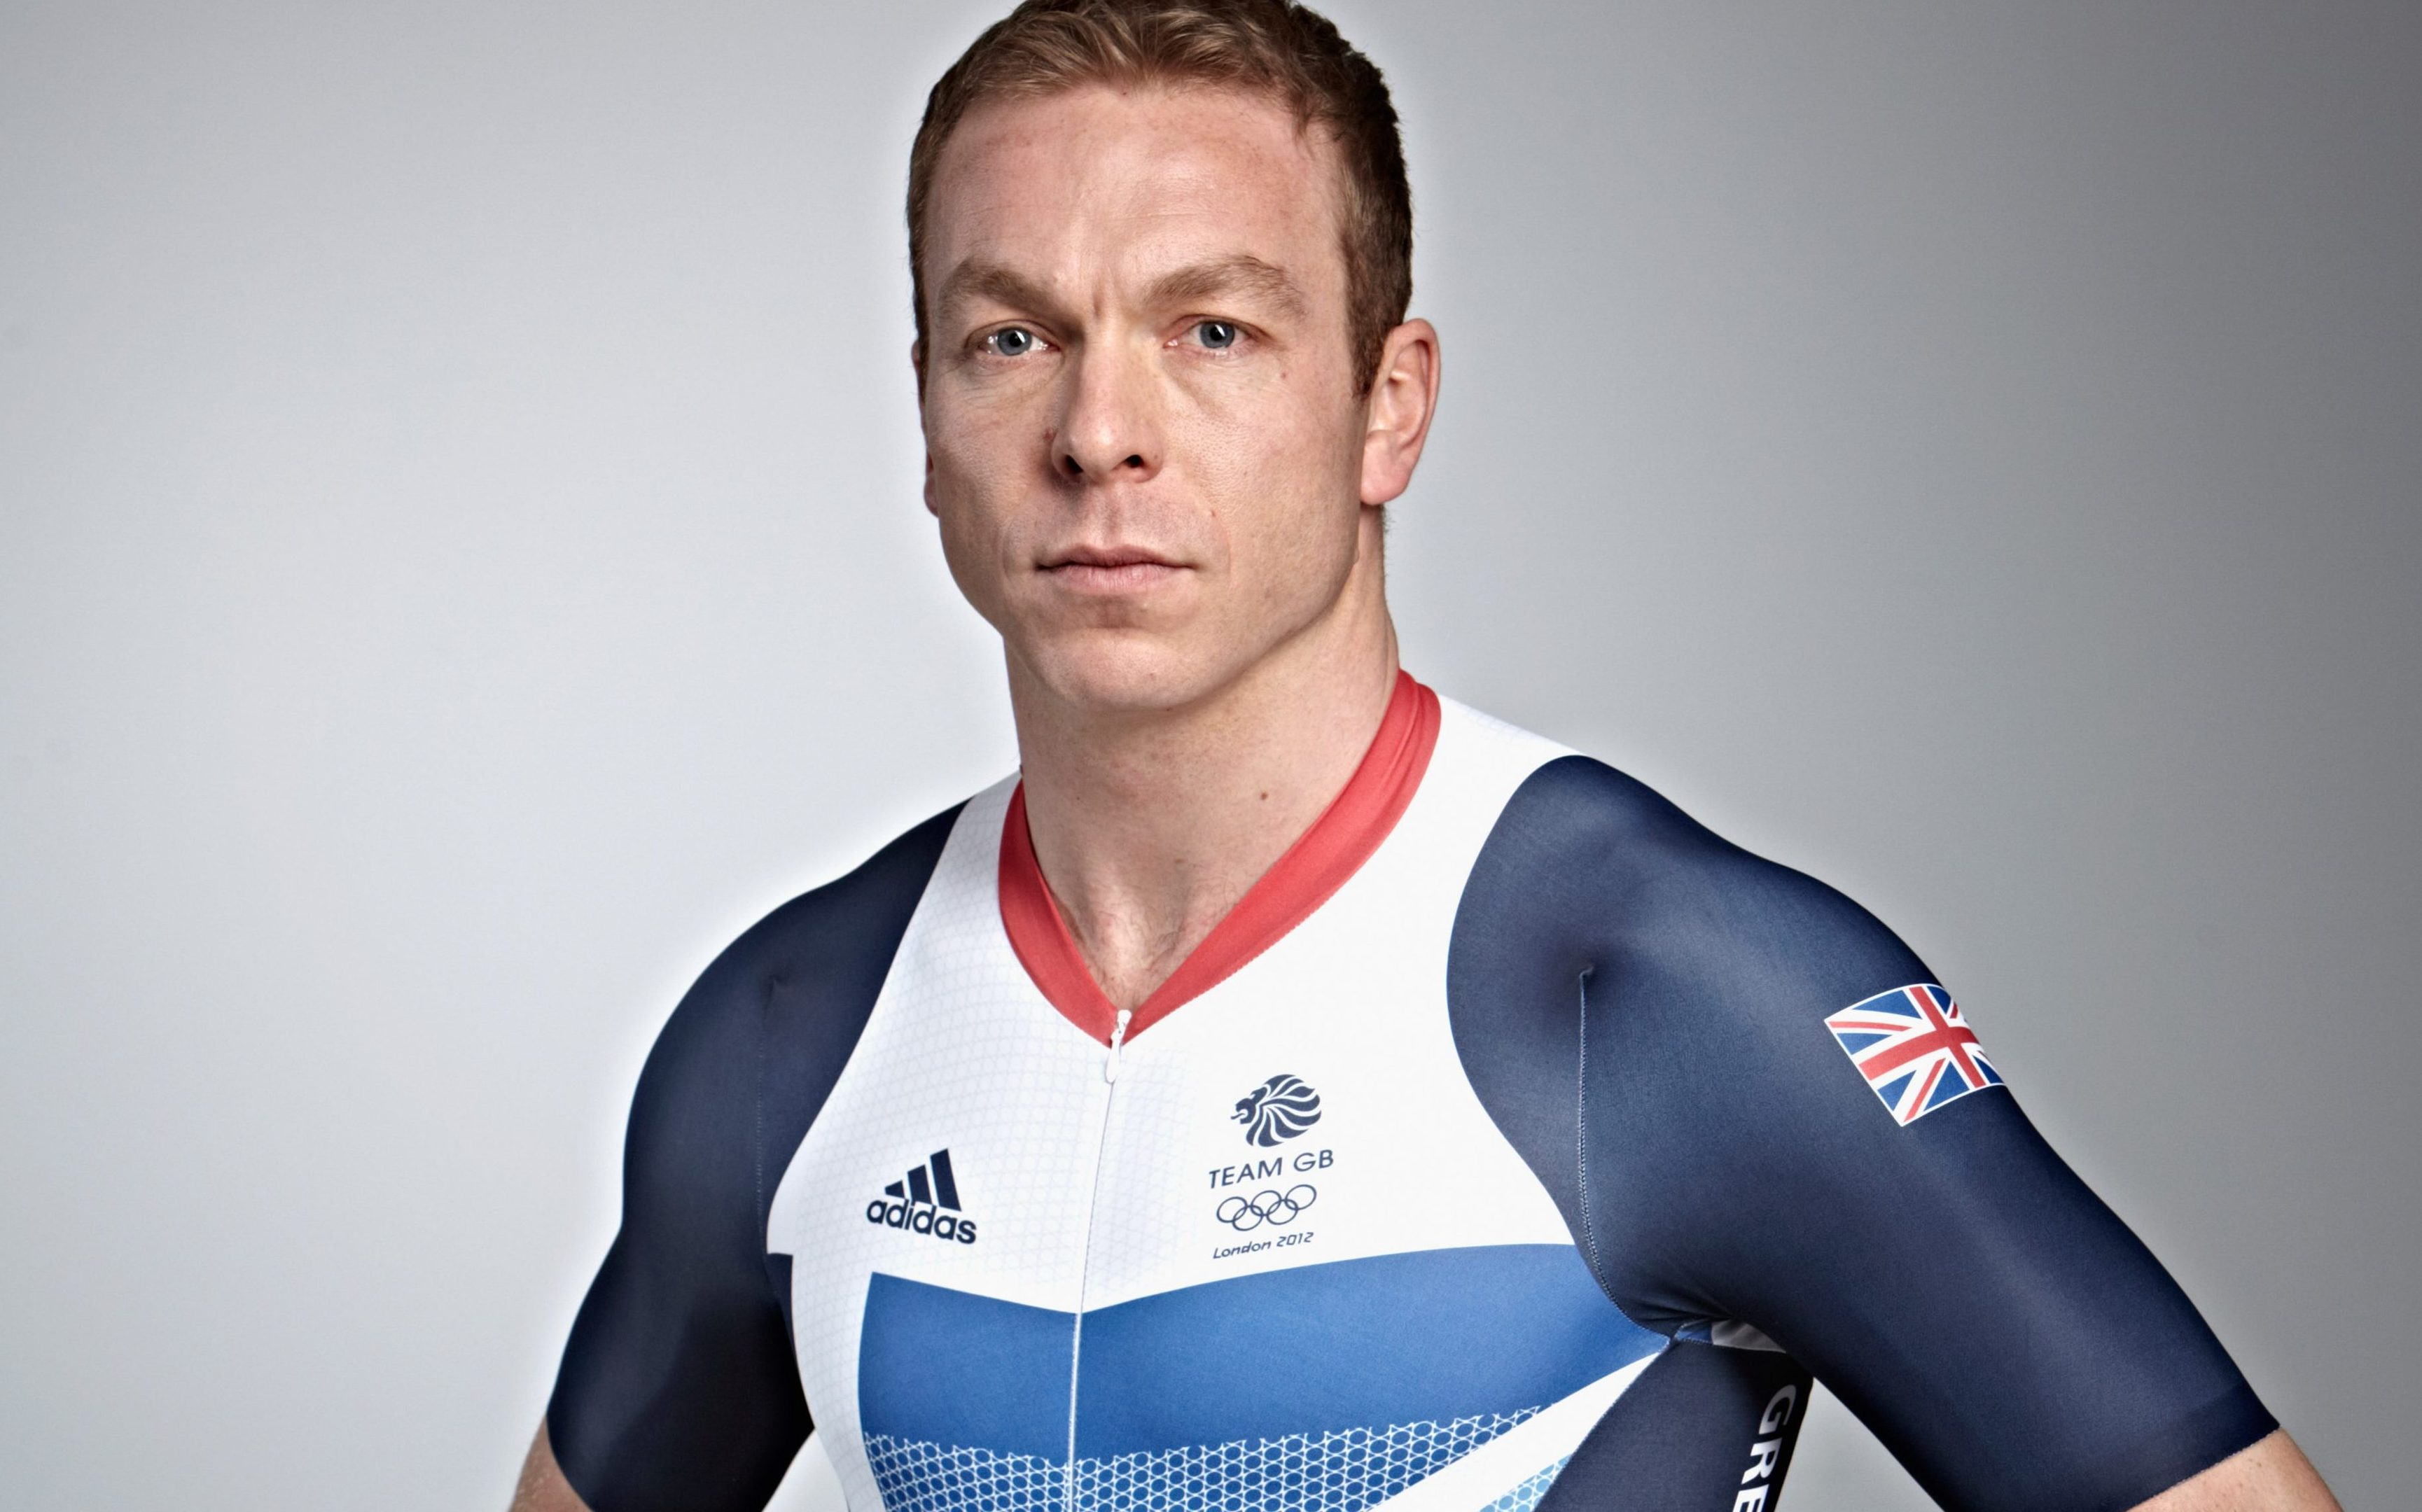 Sir Chris Hoy (Adidas via Getty Images)